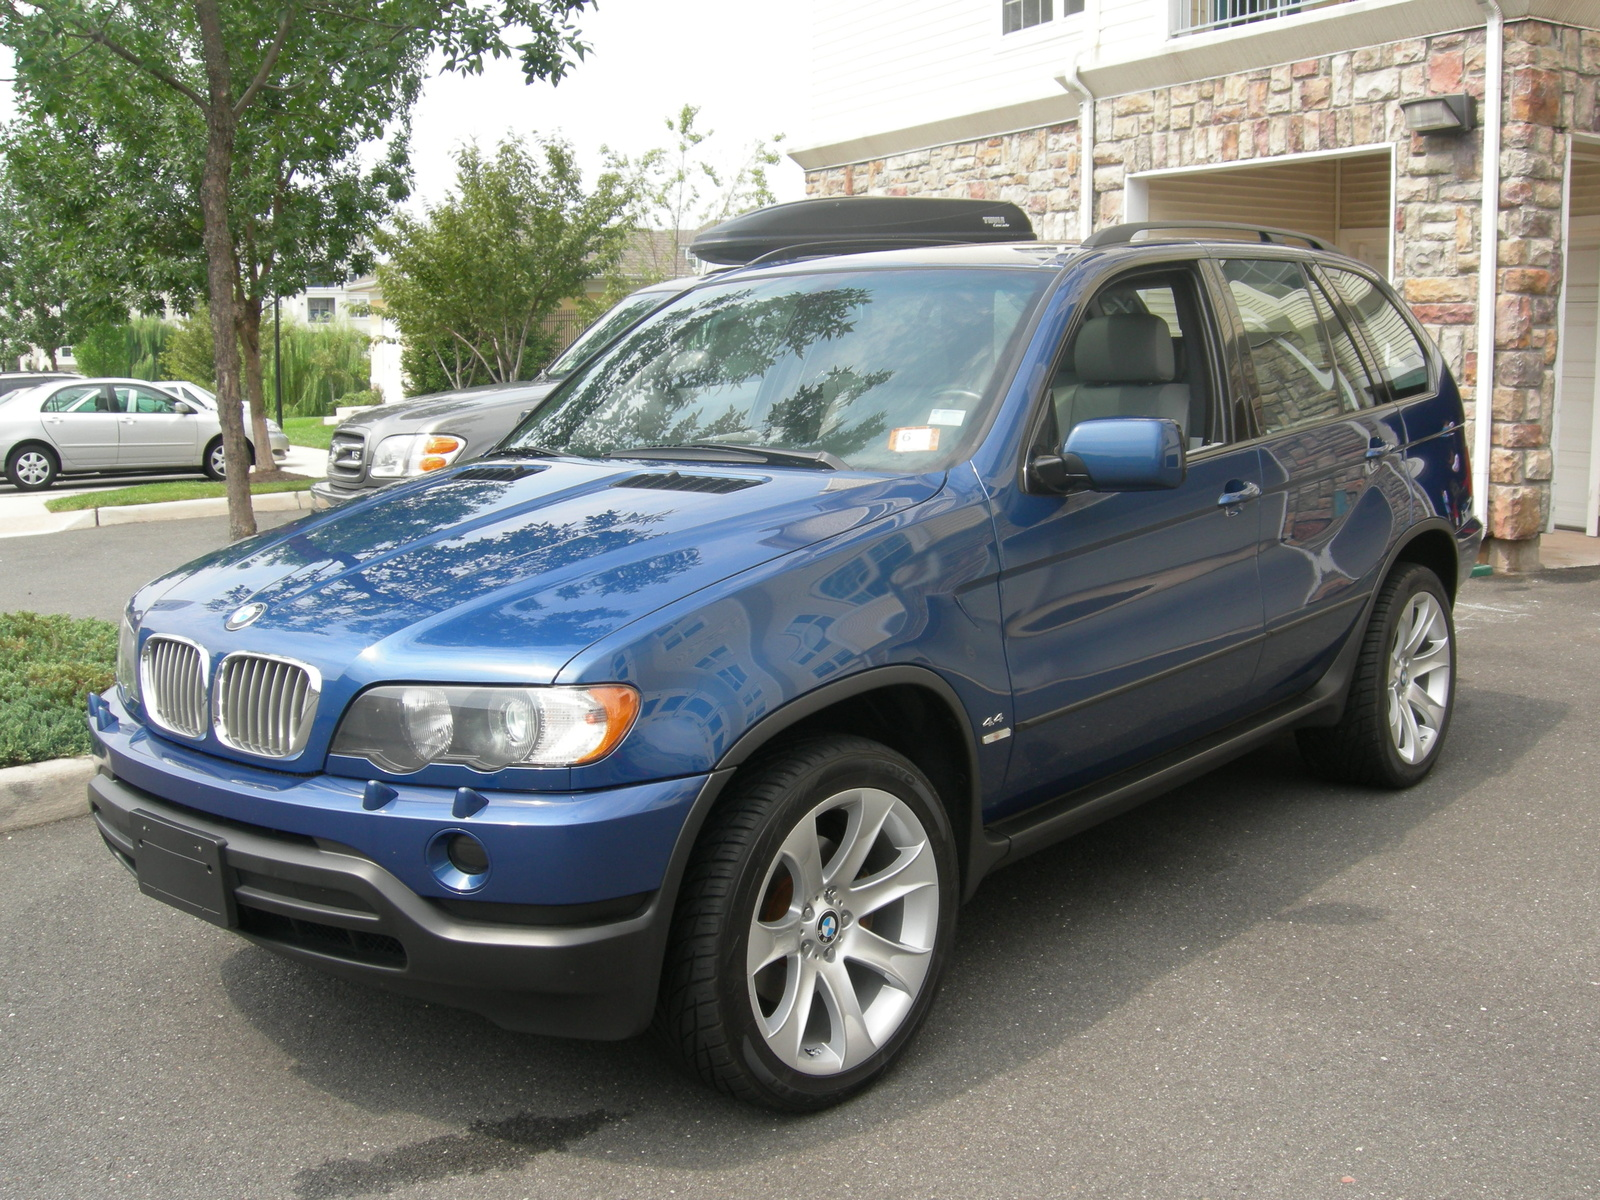 bmw x5 related images,start 200 - WeiLi Automotive Network